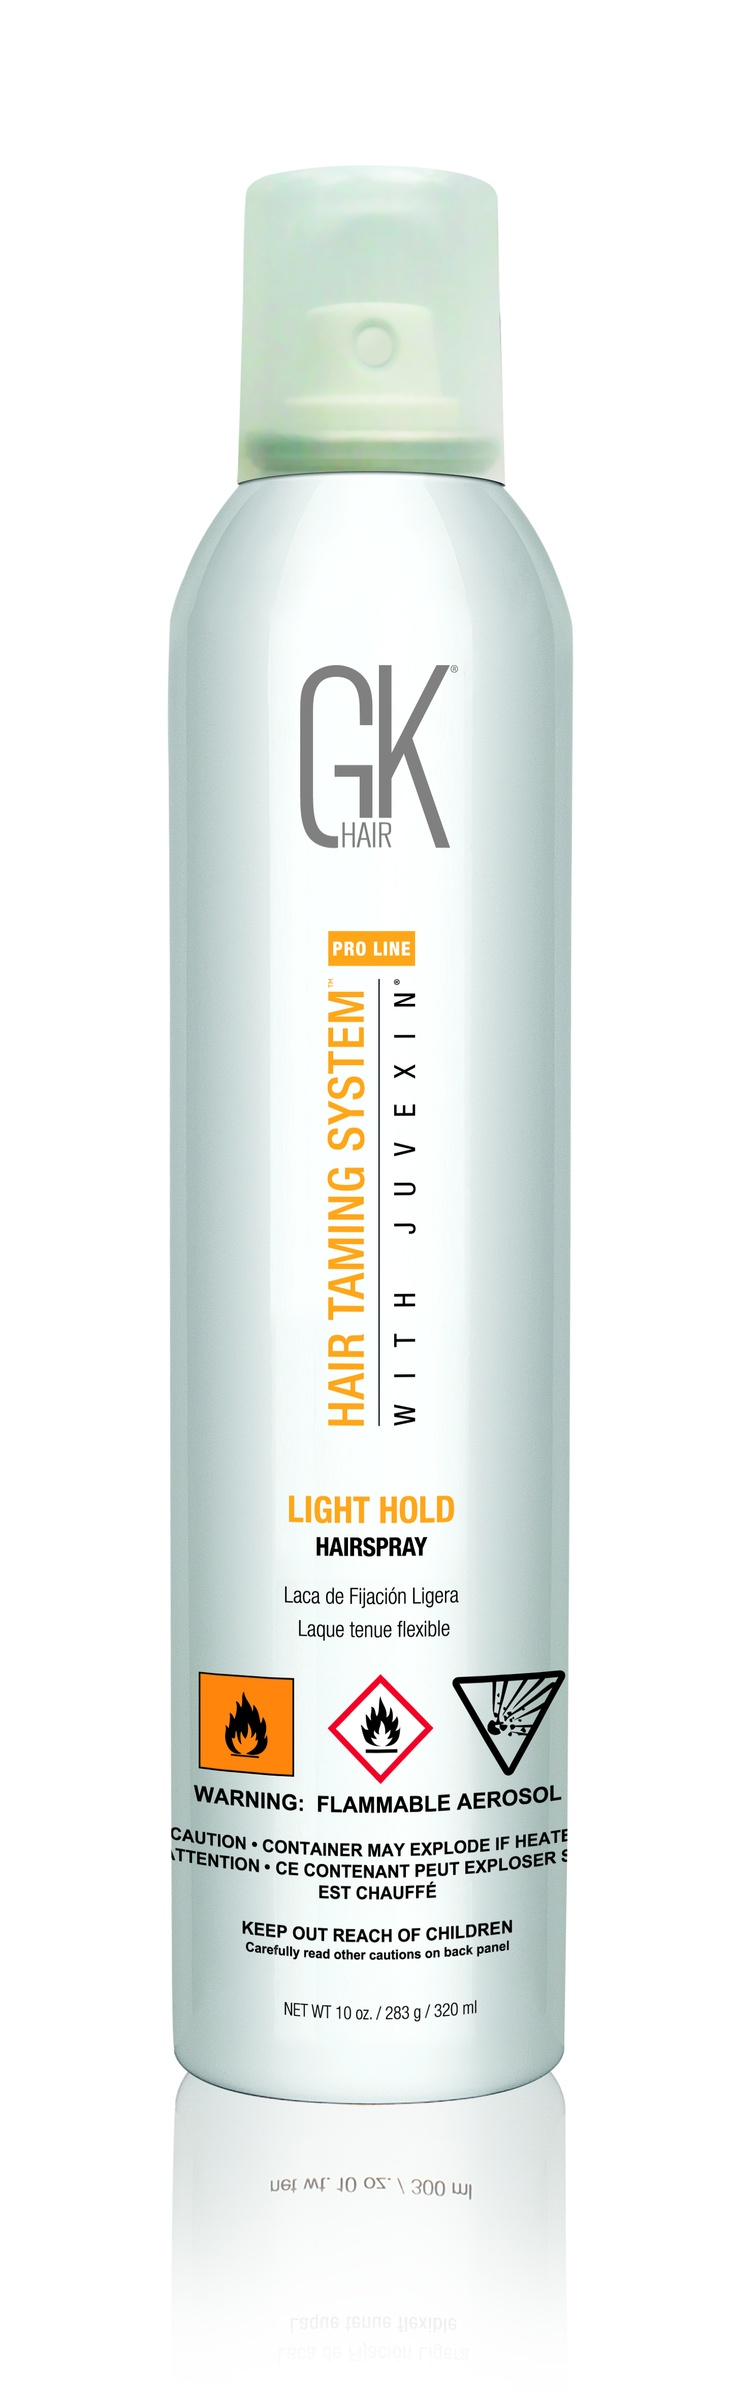 The #GKhair Light Hold #Hairspray $19 - creates lightweight control allowing #hair artists to create #beautiful, #flexible styles without sacrificing the desired result.